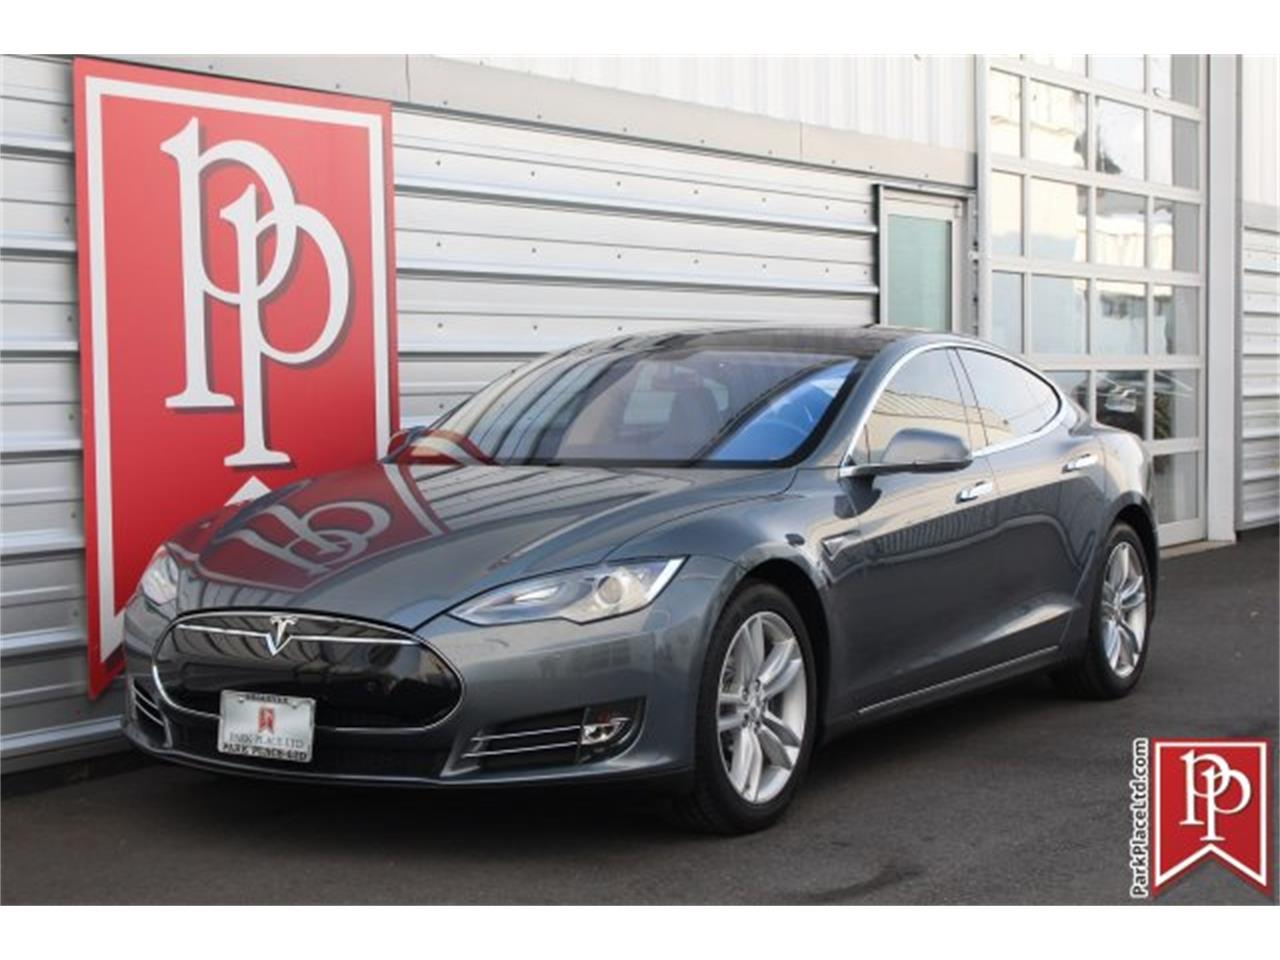 Large Picture of 2014 Tesla Model S located in Bellevue Washington - $37,950.00 - OW52